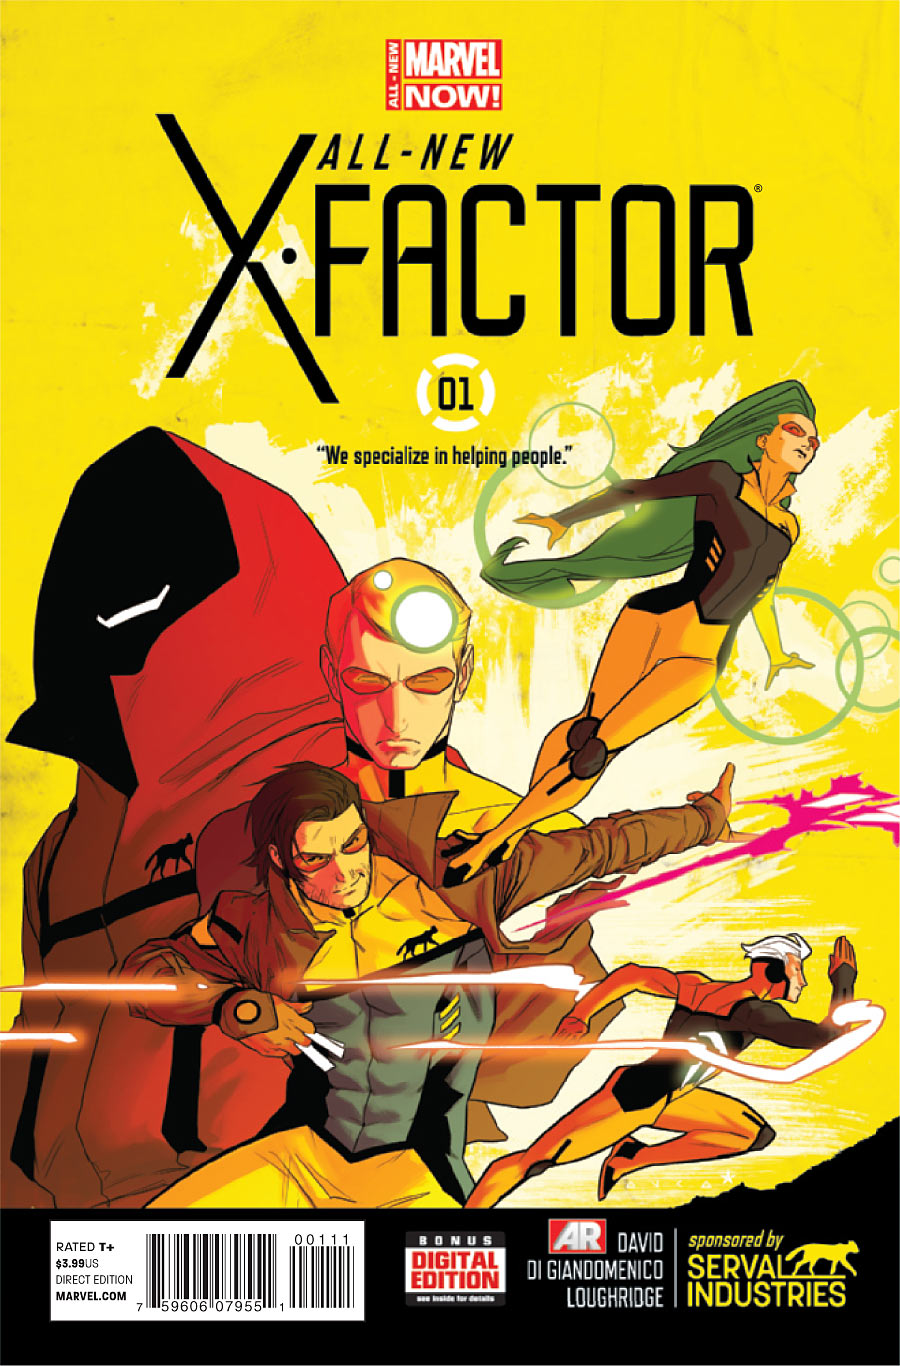 All-New X-Factor #1